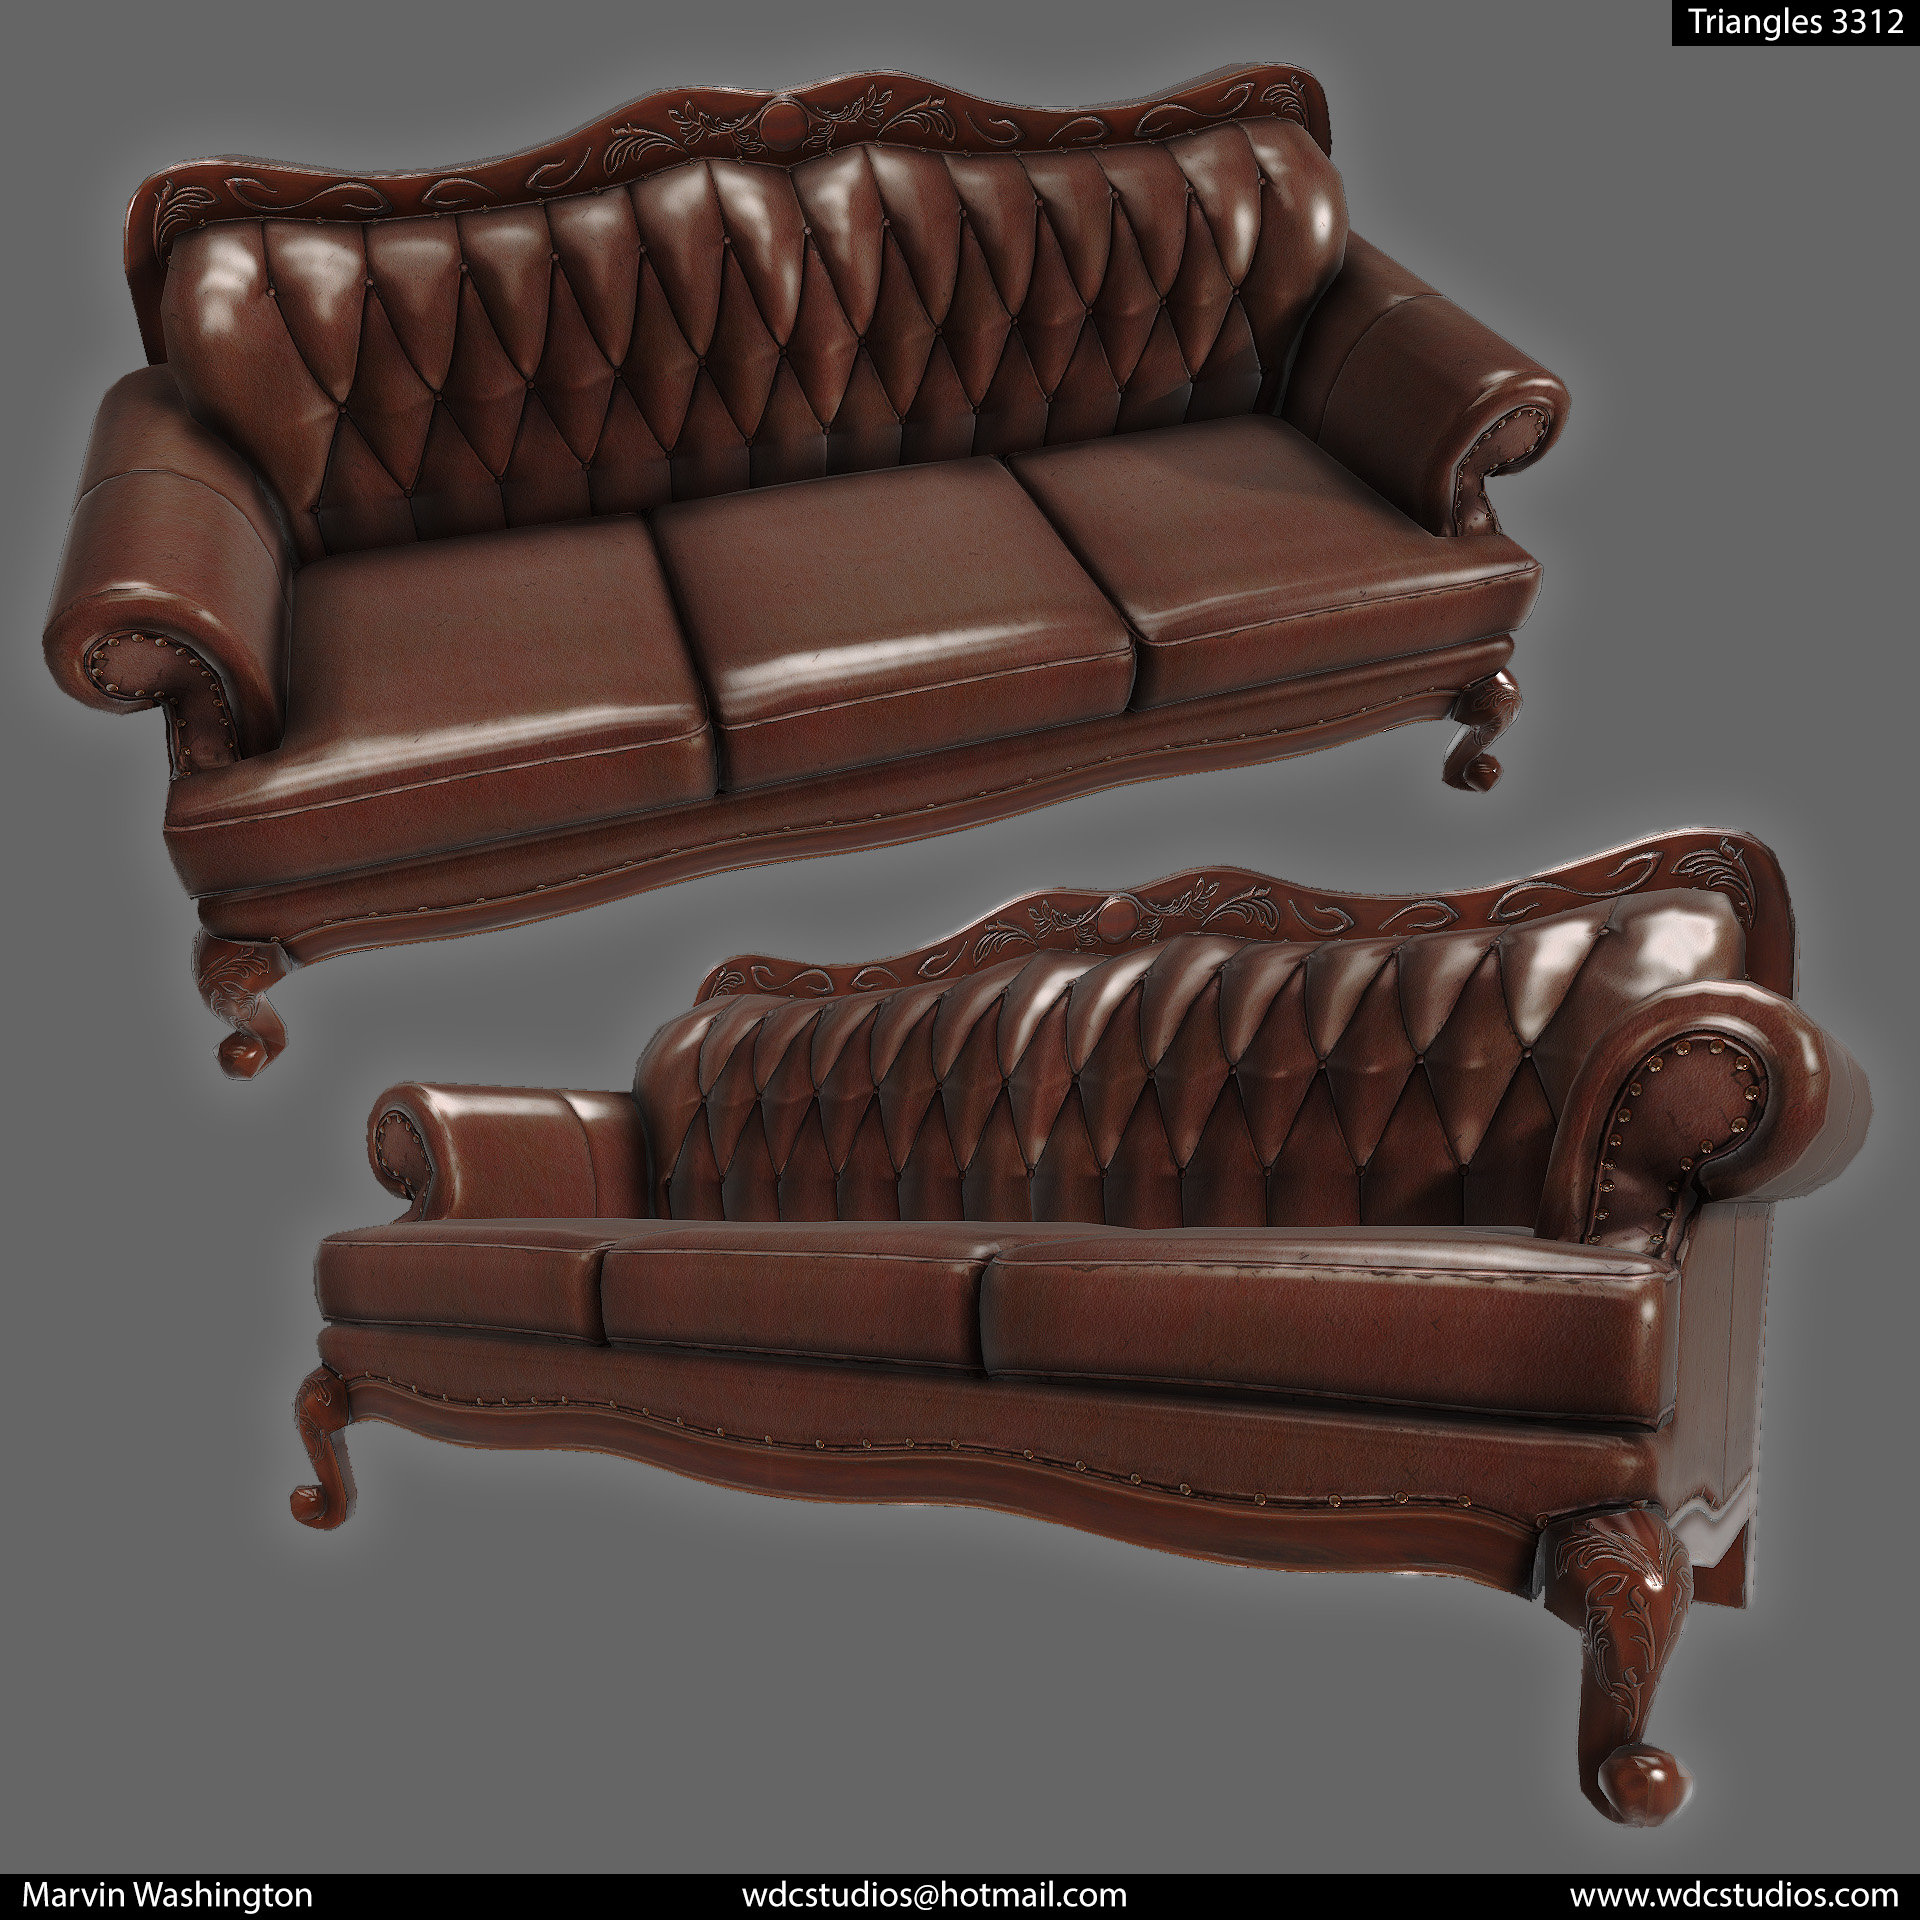 Marvin washington couch revised